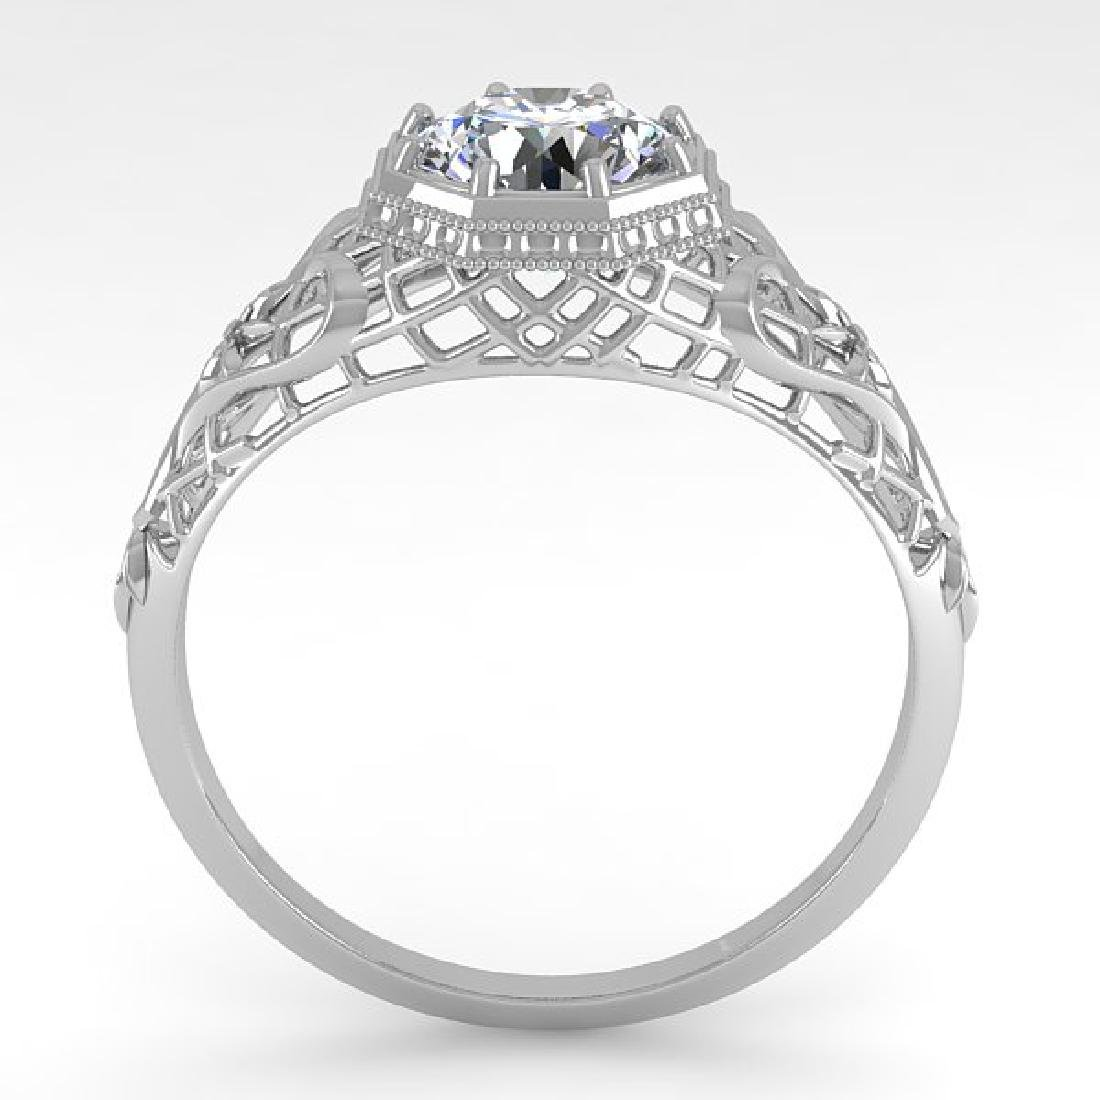 1.01 CTW VS/SI Diamond Solitaire Ring 14K White Gold - 3